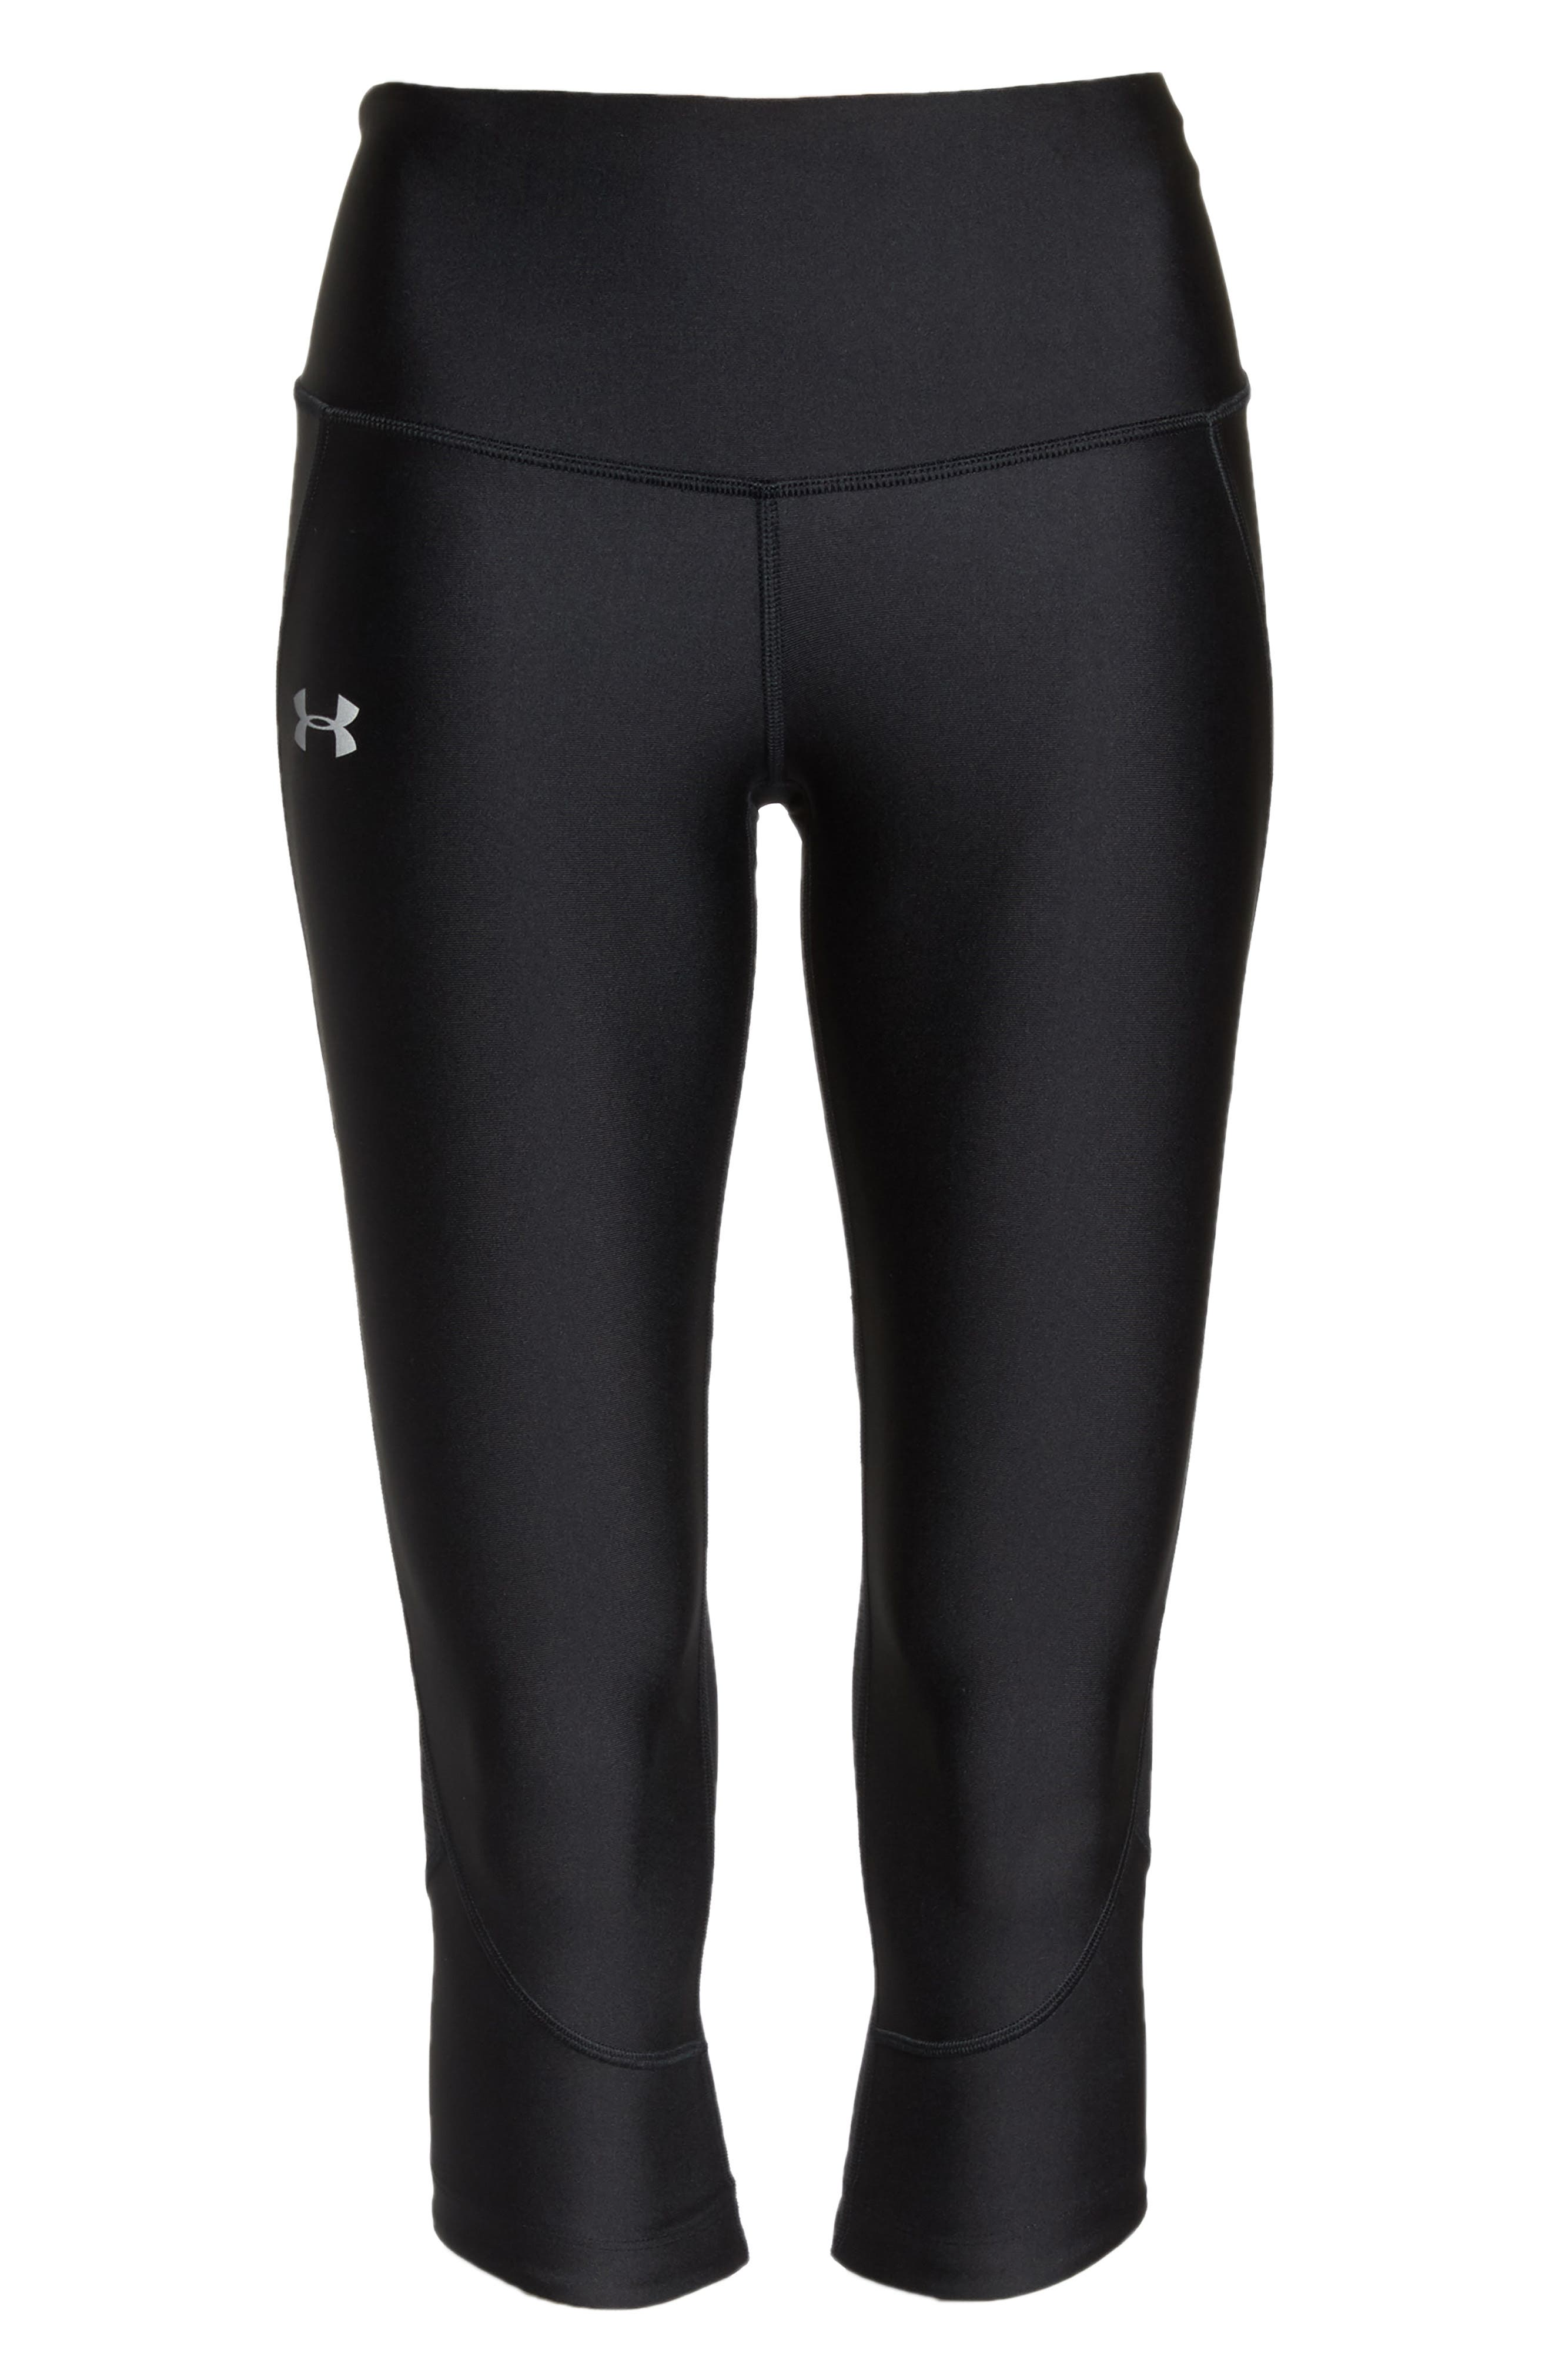 Fly Fast HeatGear<sup>®</sup> Capri Leggings,                             Alternate thumbnail 6, color,                             001